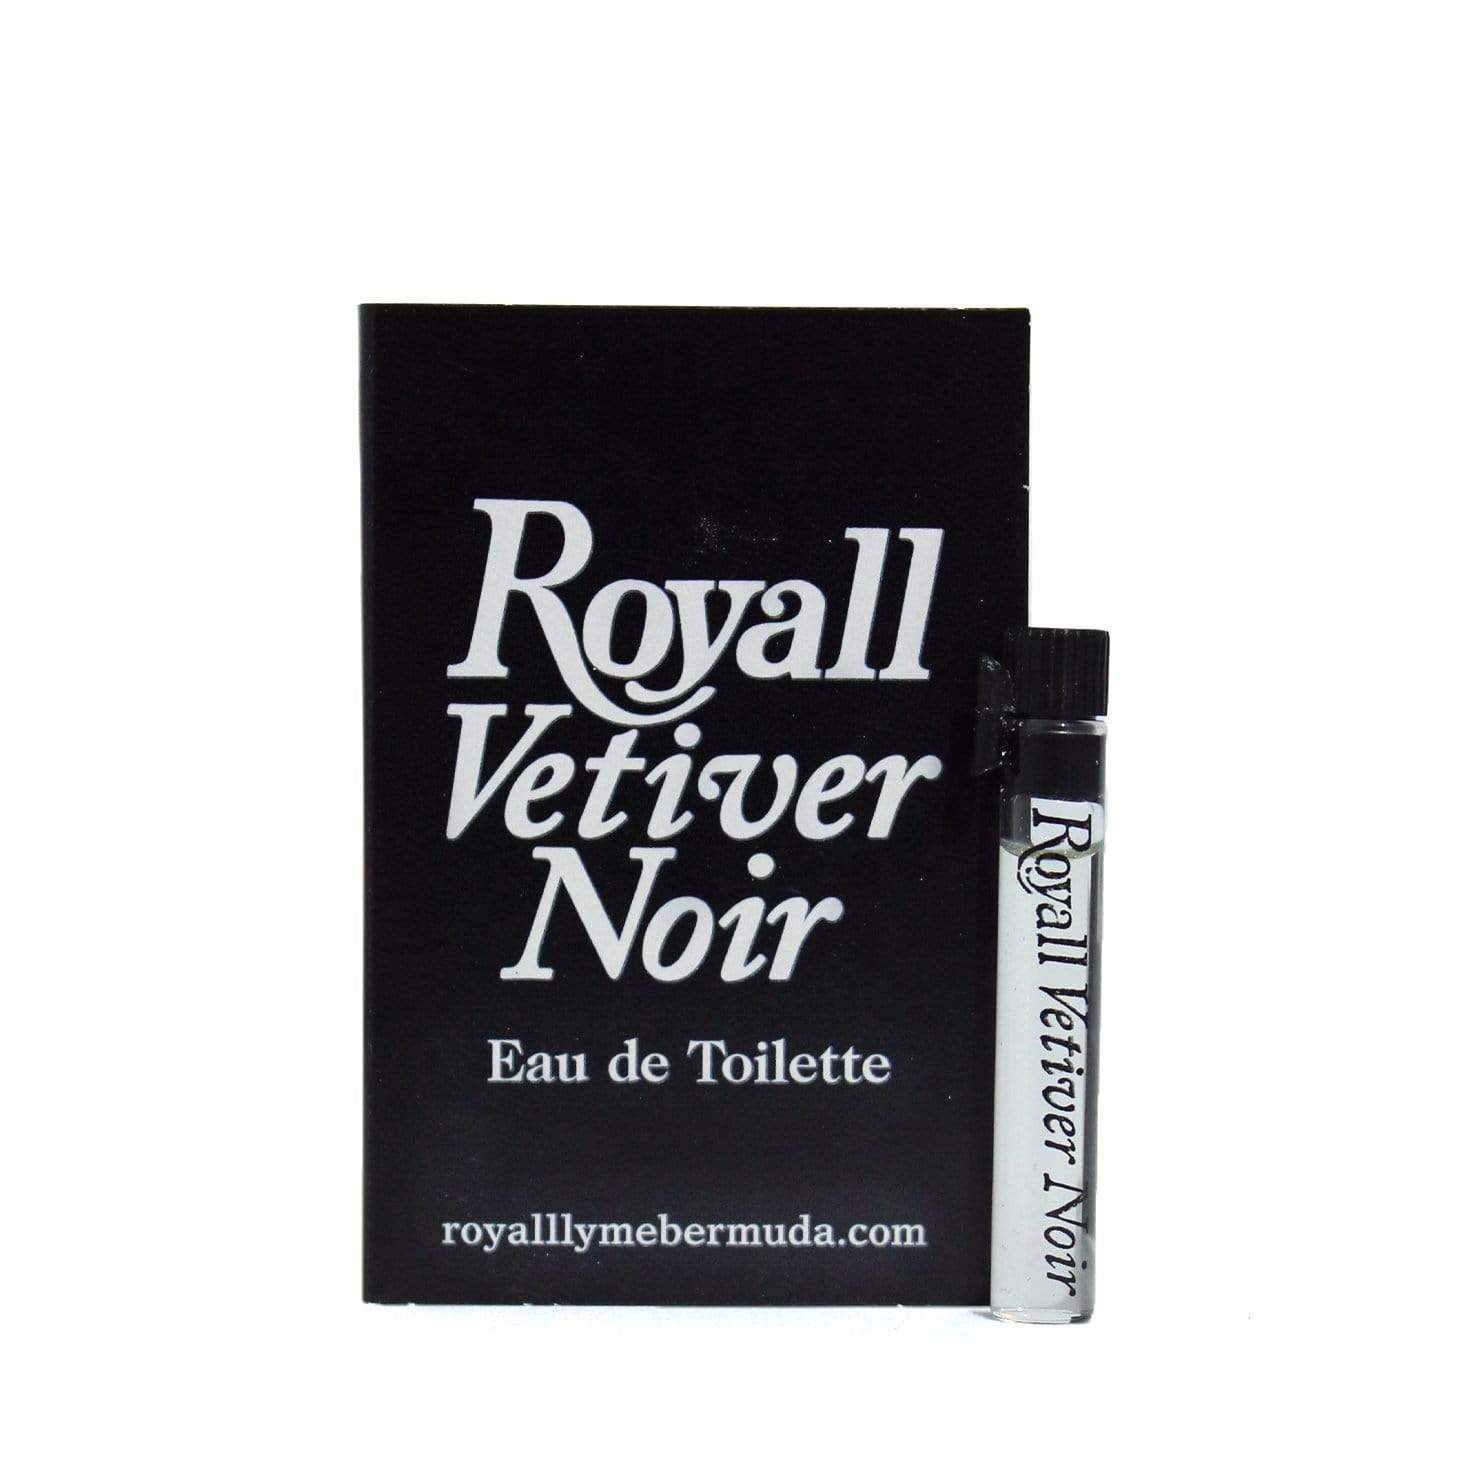 Royall Vetiver Noir Eau de Toilette - 2ml